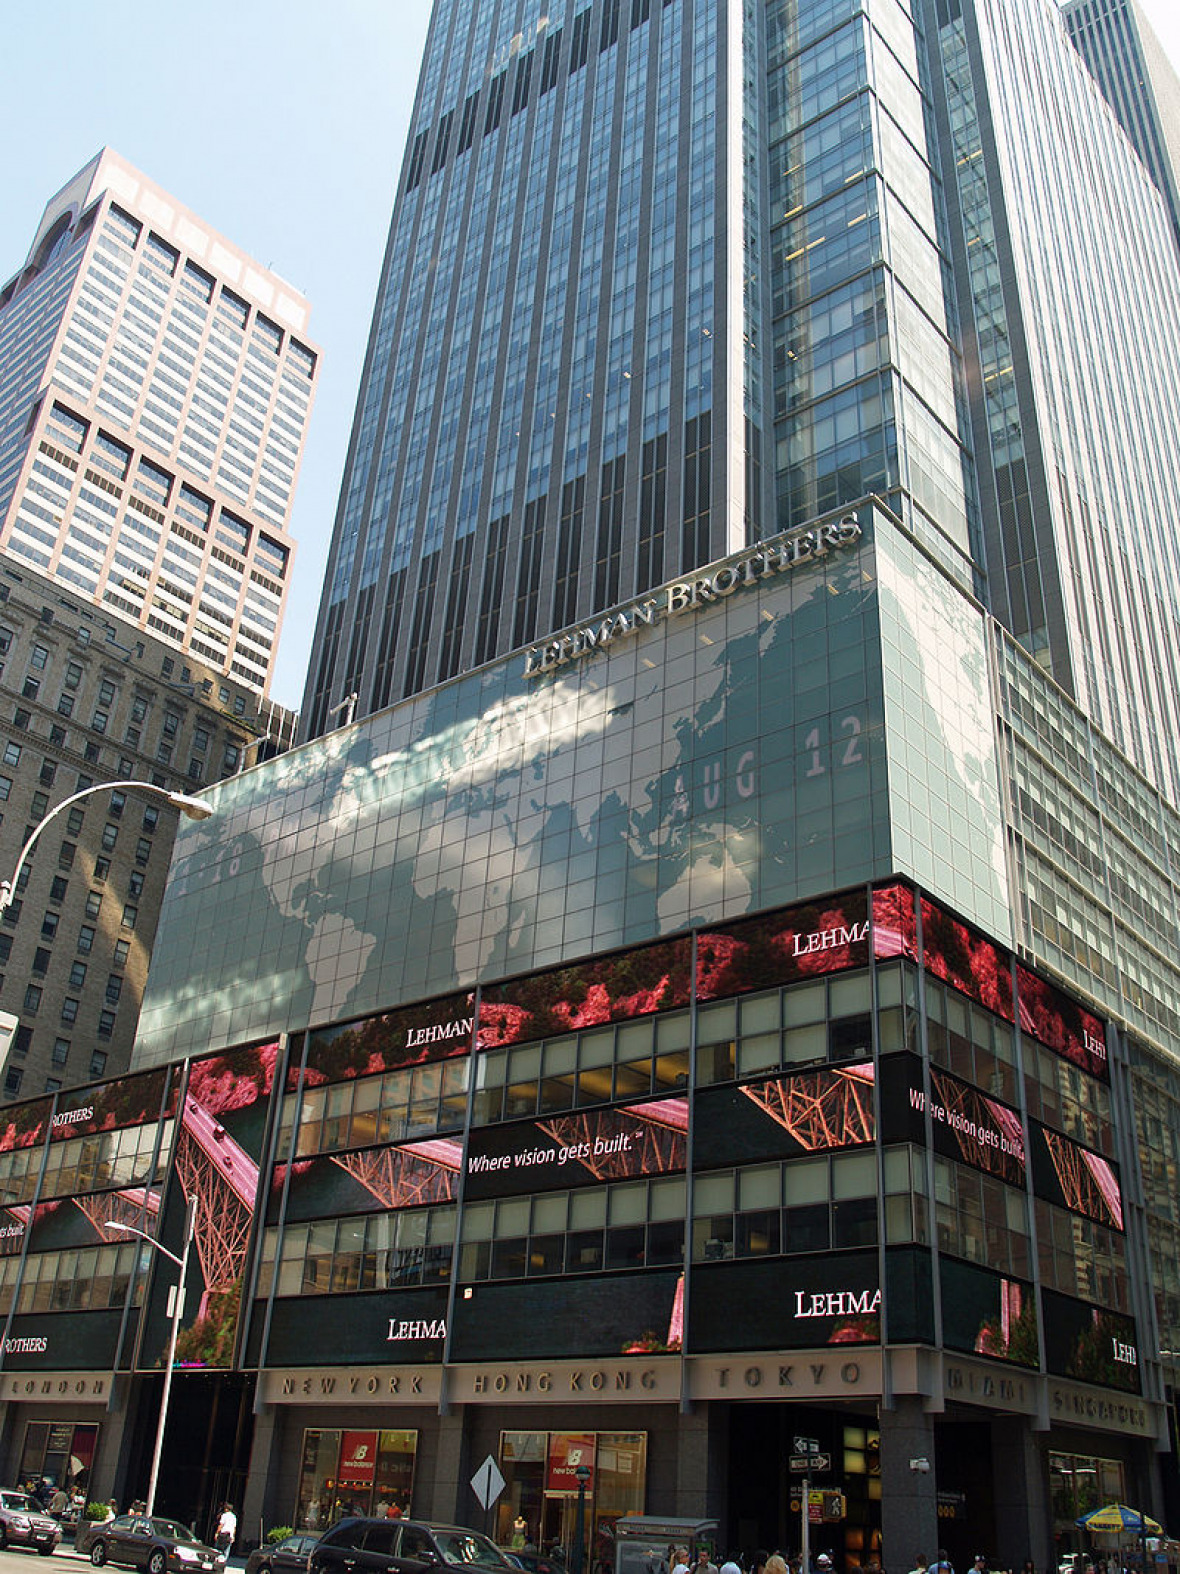 The Lehman Brothers headquarters in New York in August 2007, about a year before the bankruptcy.